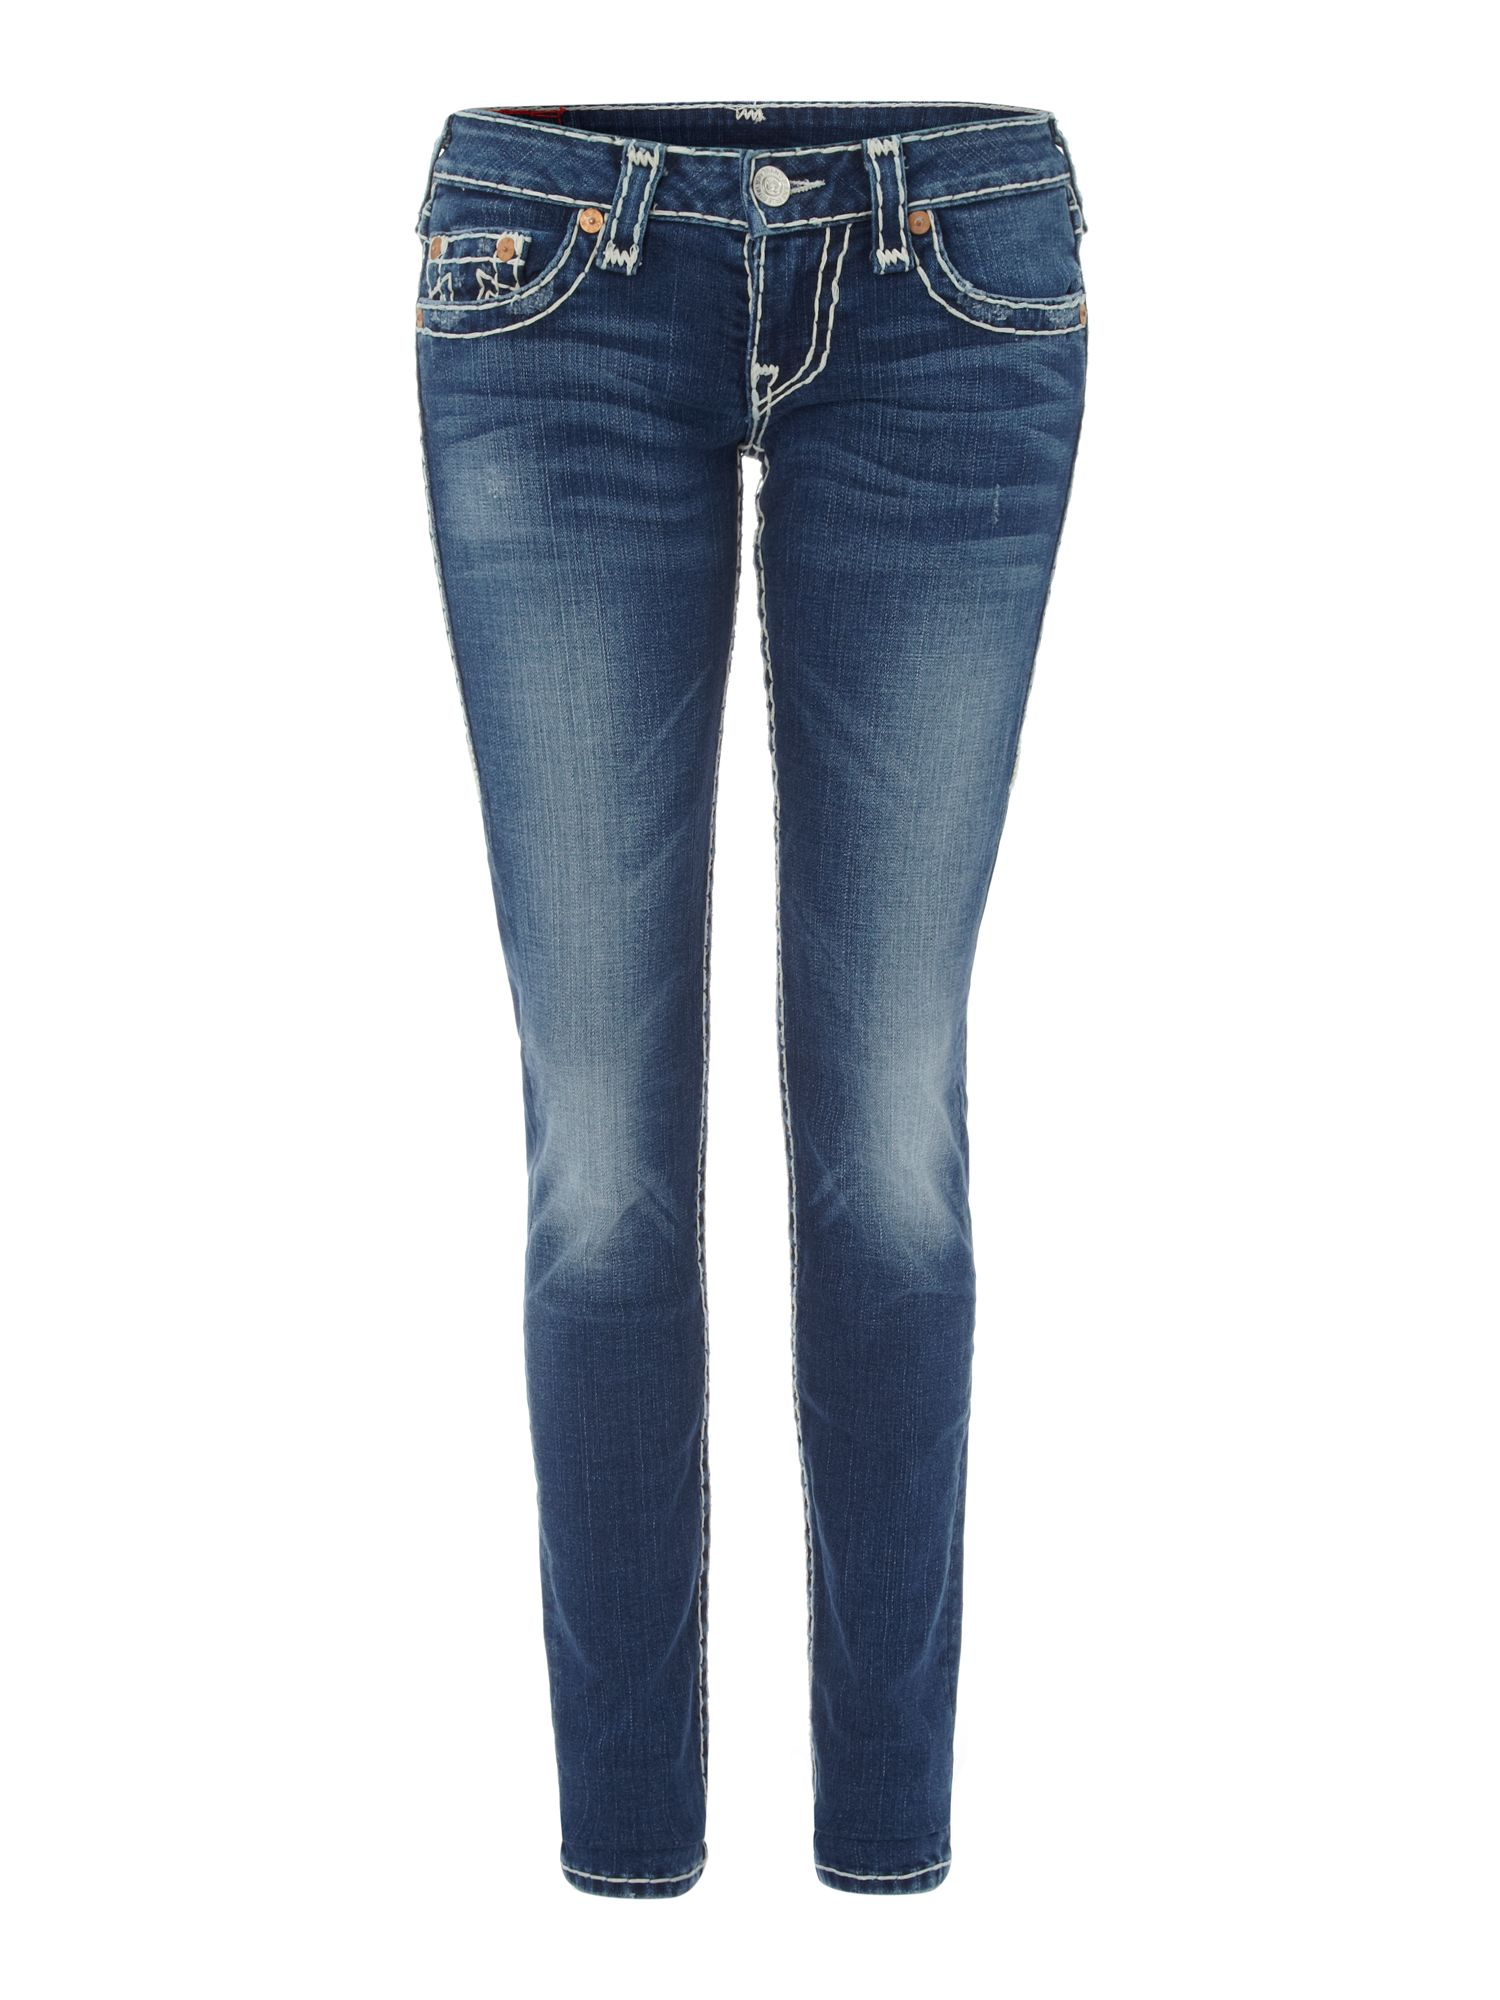 Stella super-t skinny jeans in Independence